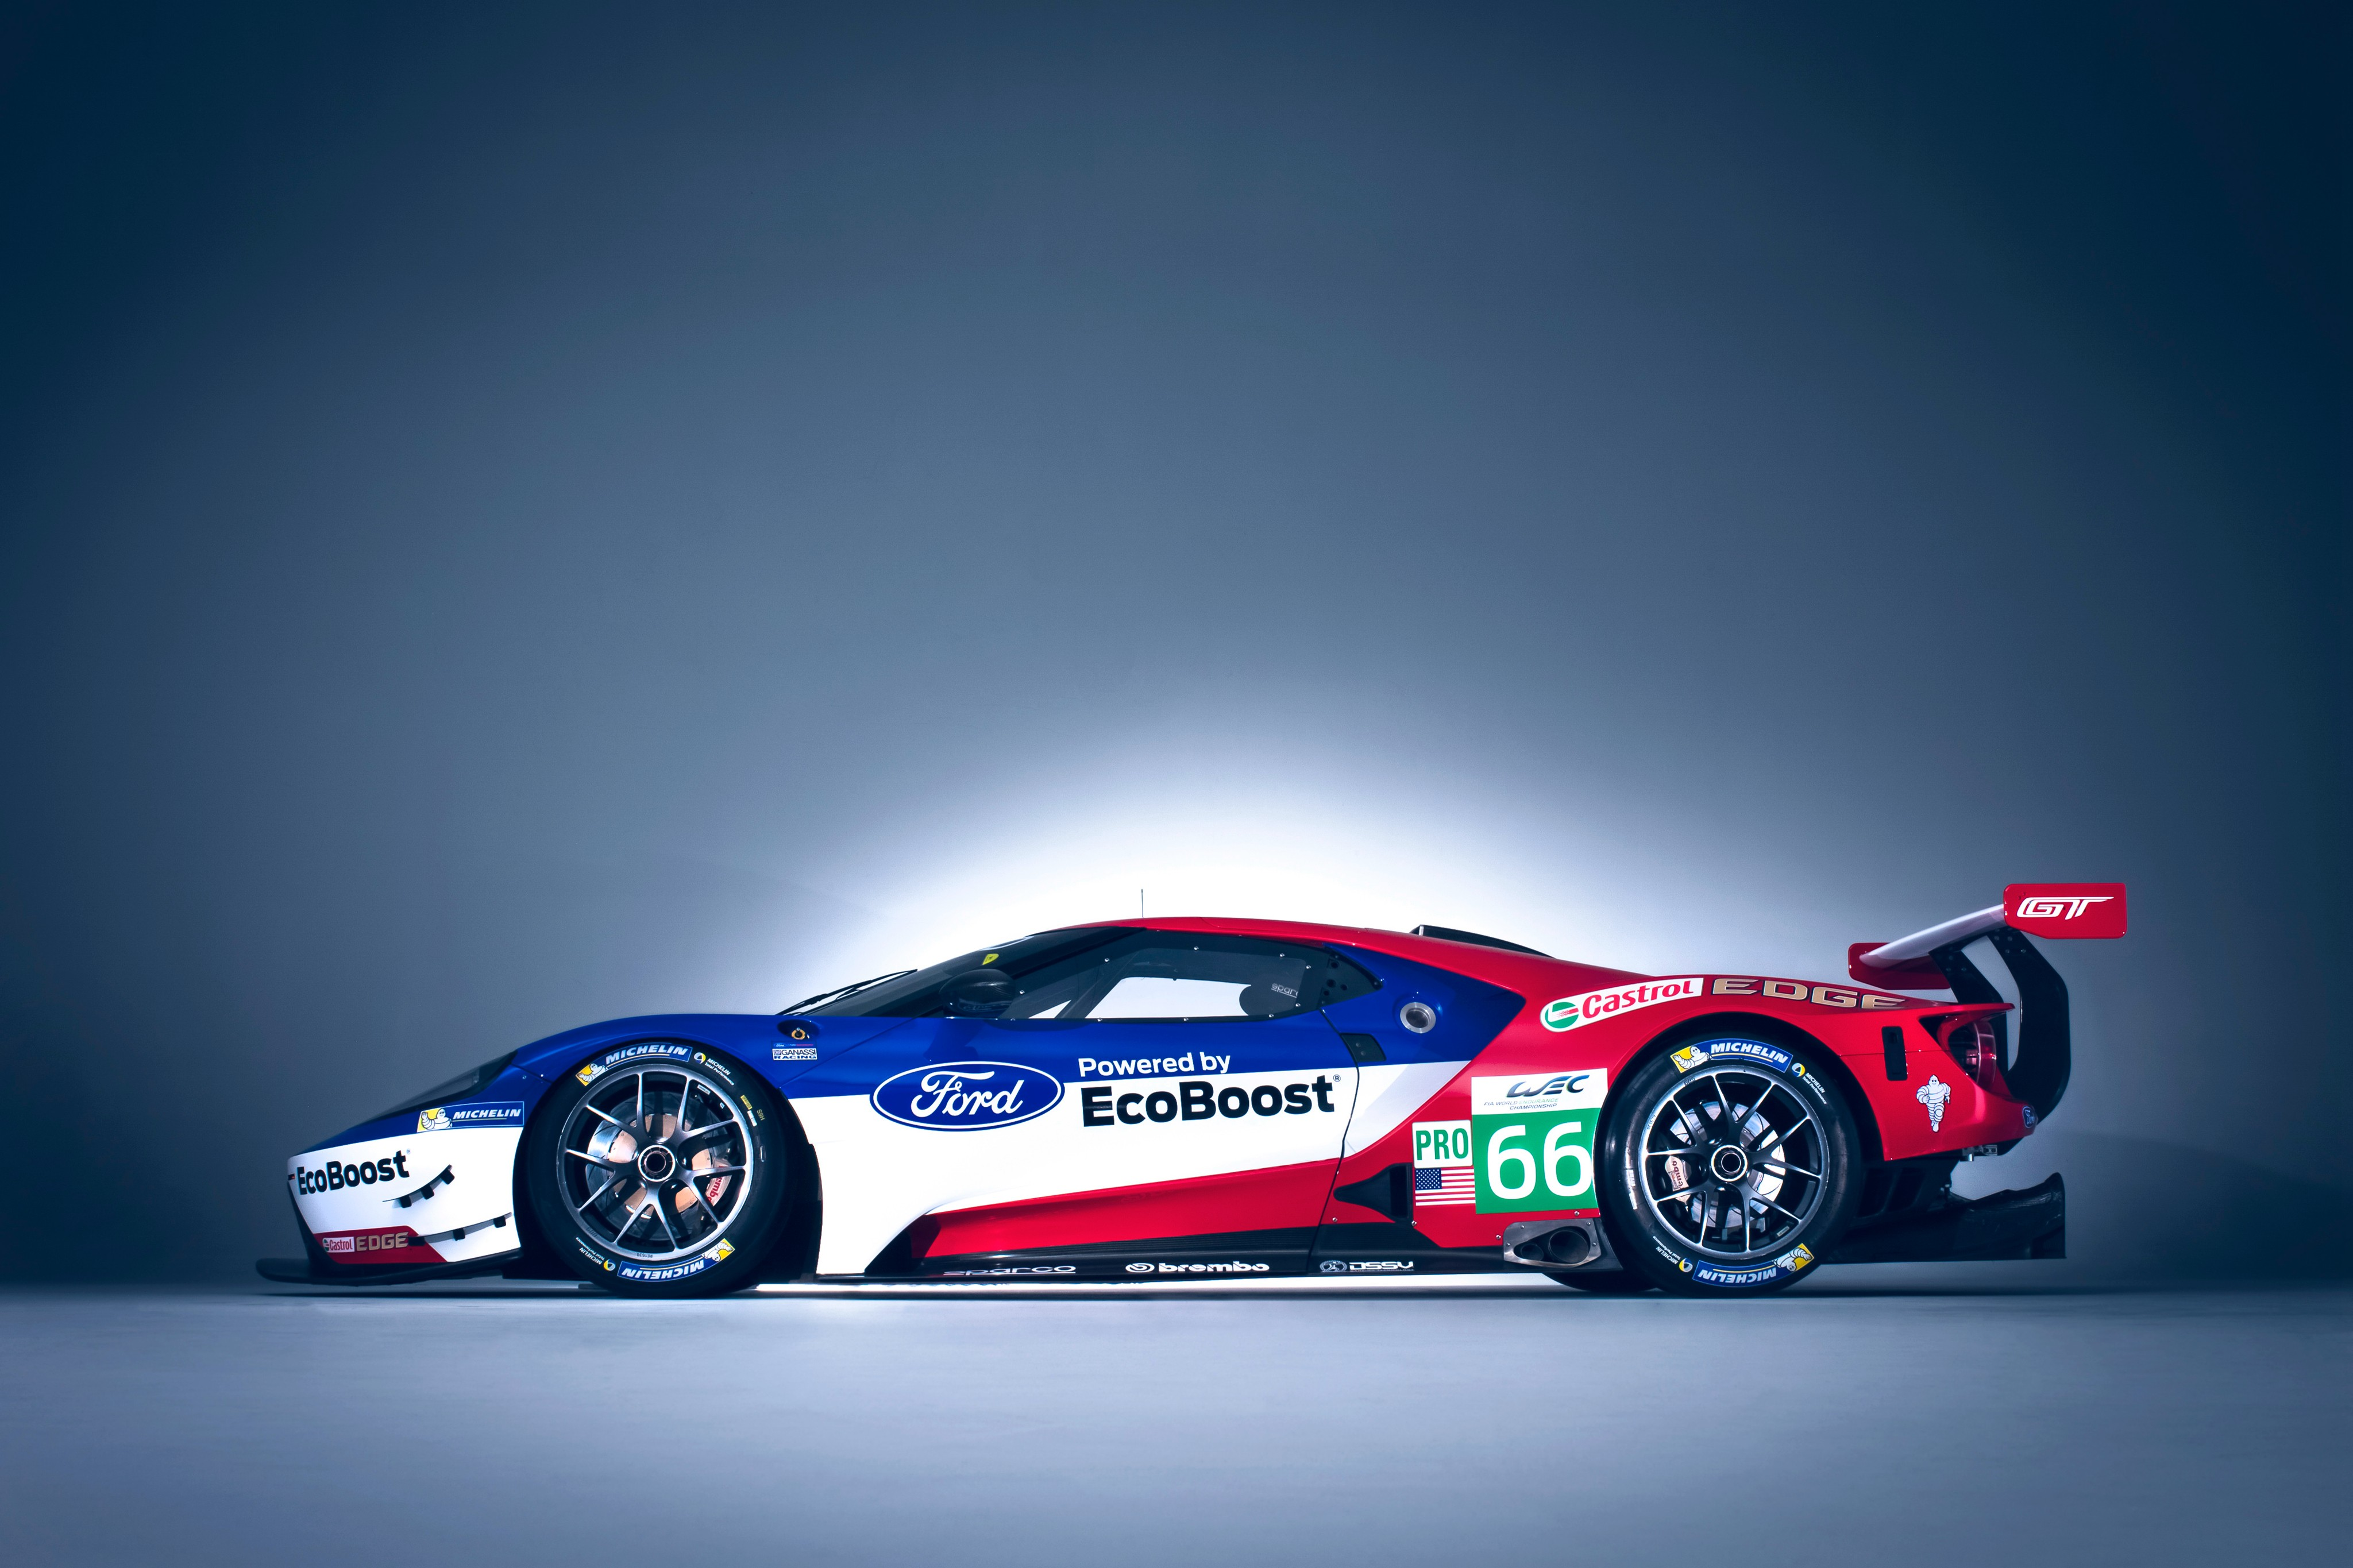 wallpaper ford gt race car 24 hours of le mans cars